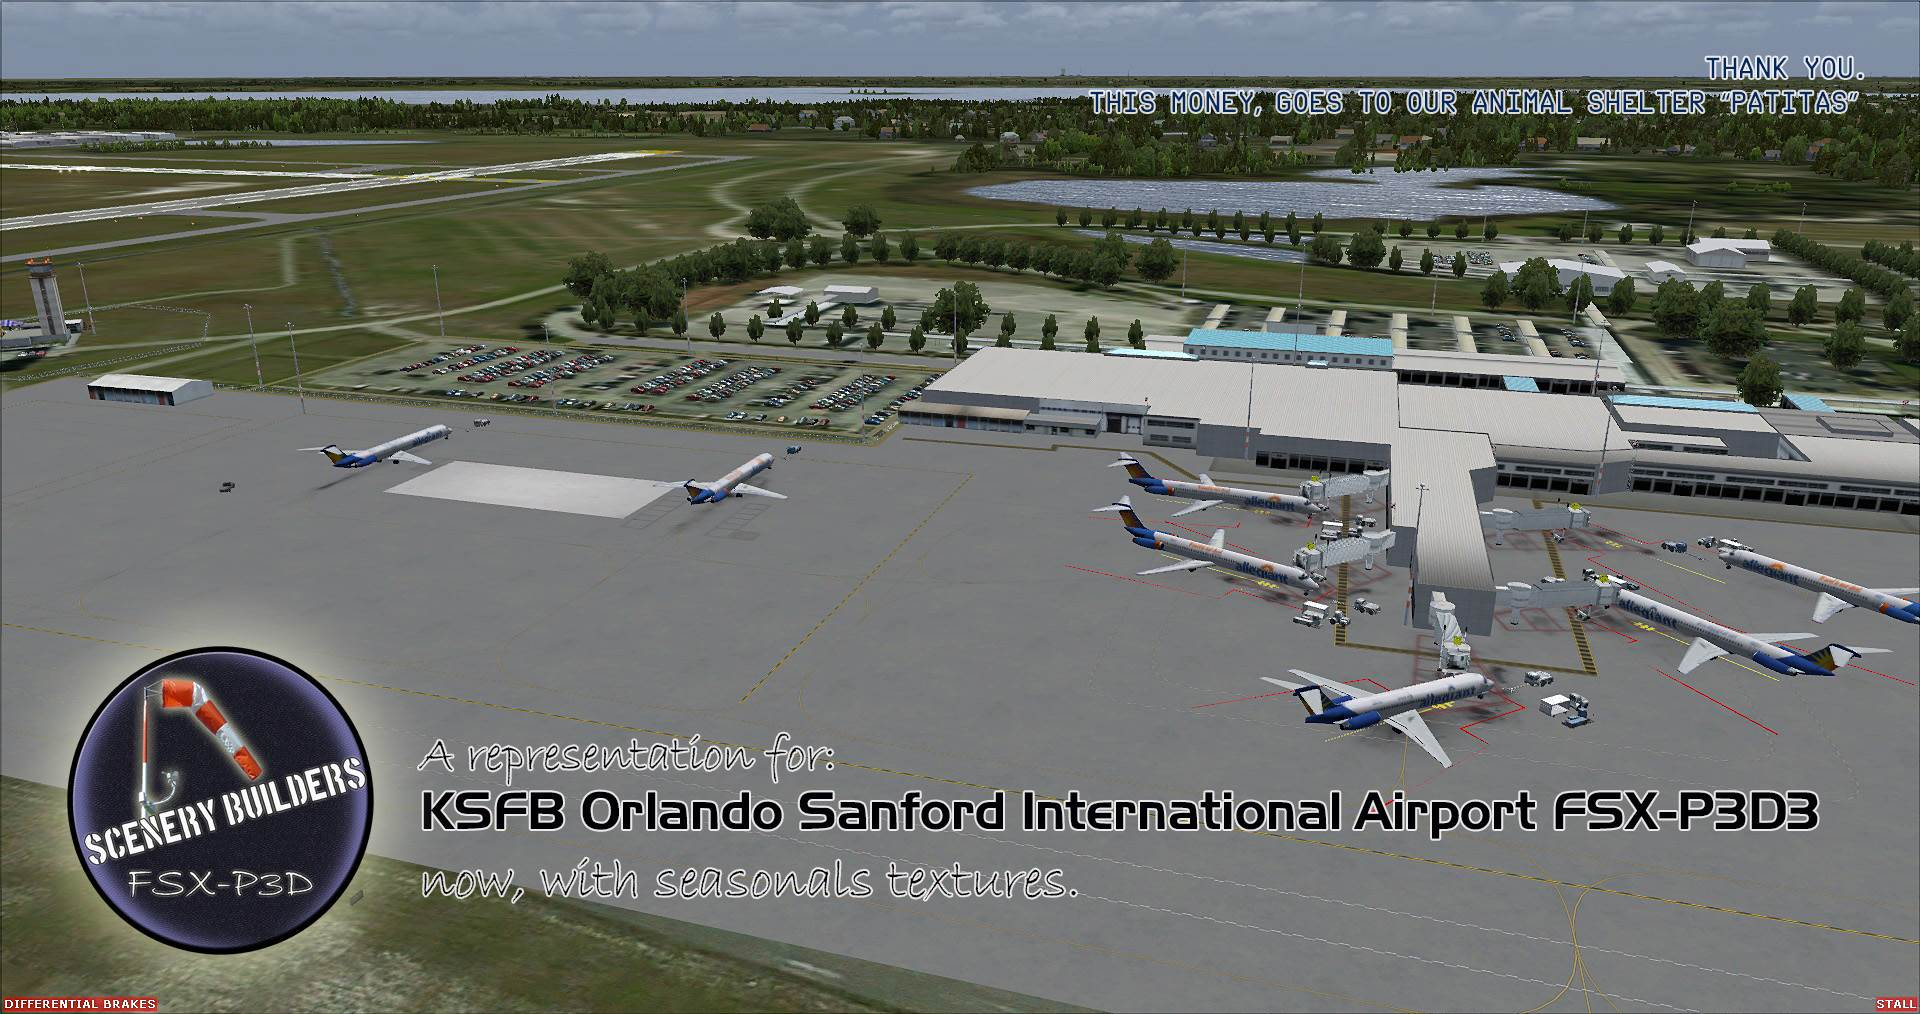 Orlando Sanford Intl., also known by IATA (International Air Transport Association) code SFB and ICAO (International Civil Aviation Organization) code KSFB, offers flights from multiple airline carriers to many popular global destinations.